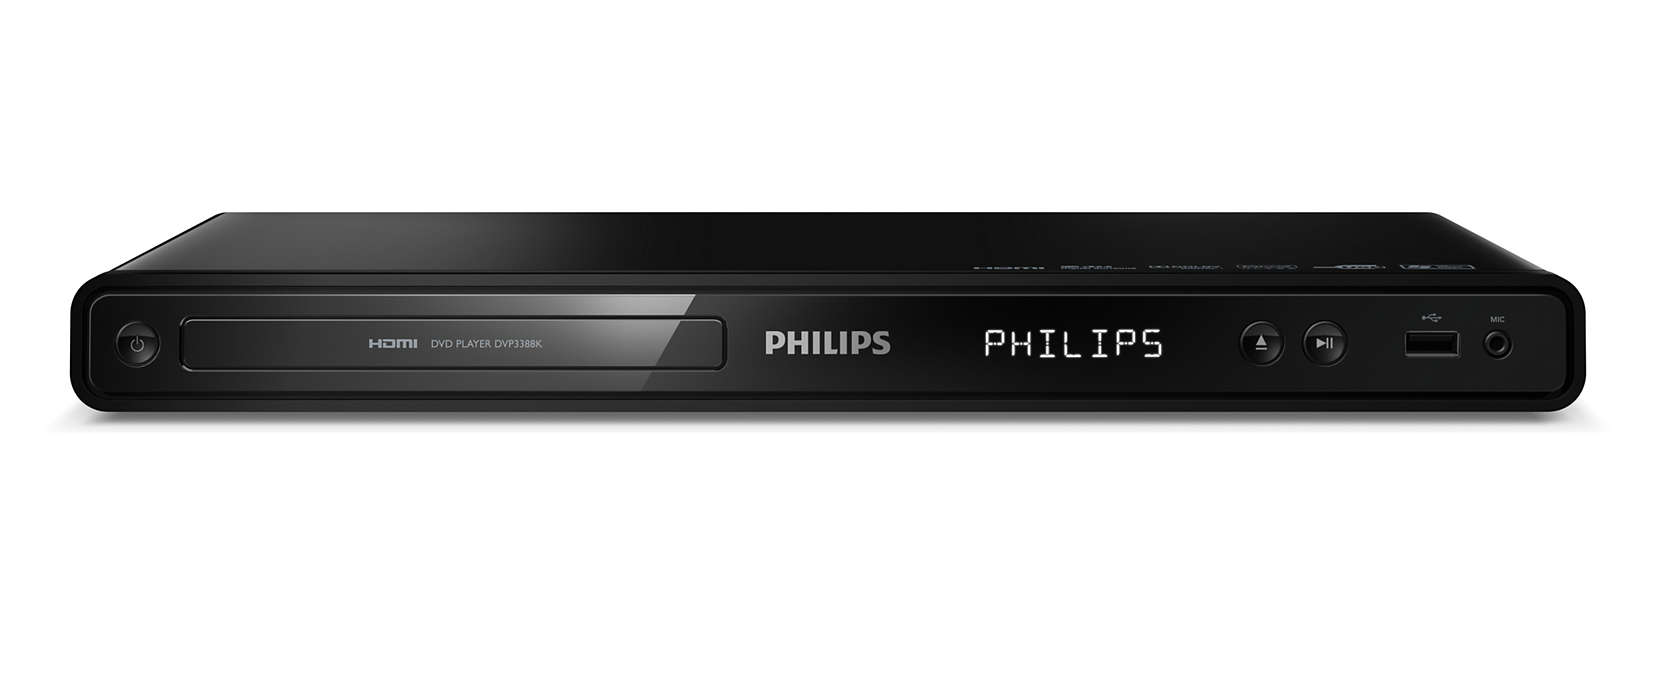 The best DVD player for your HDTV